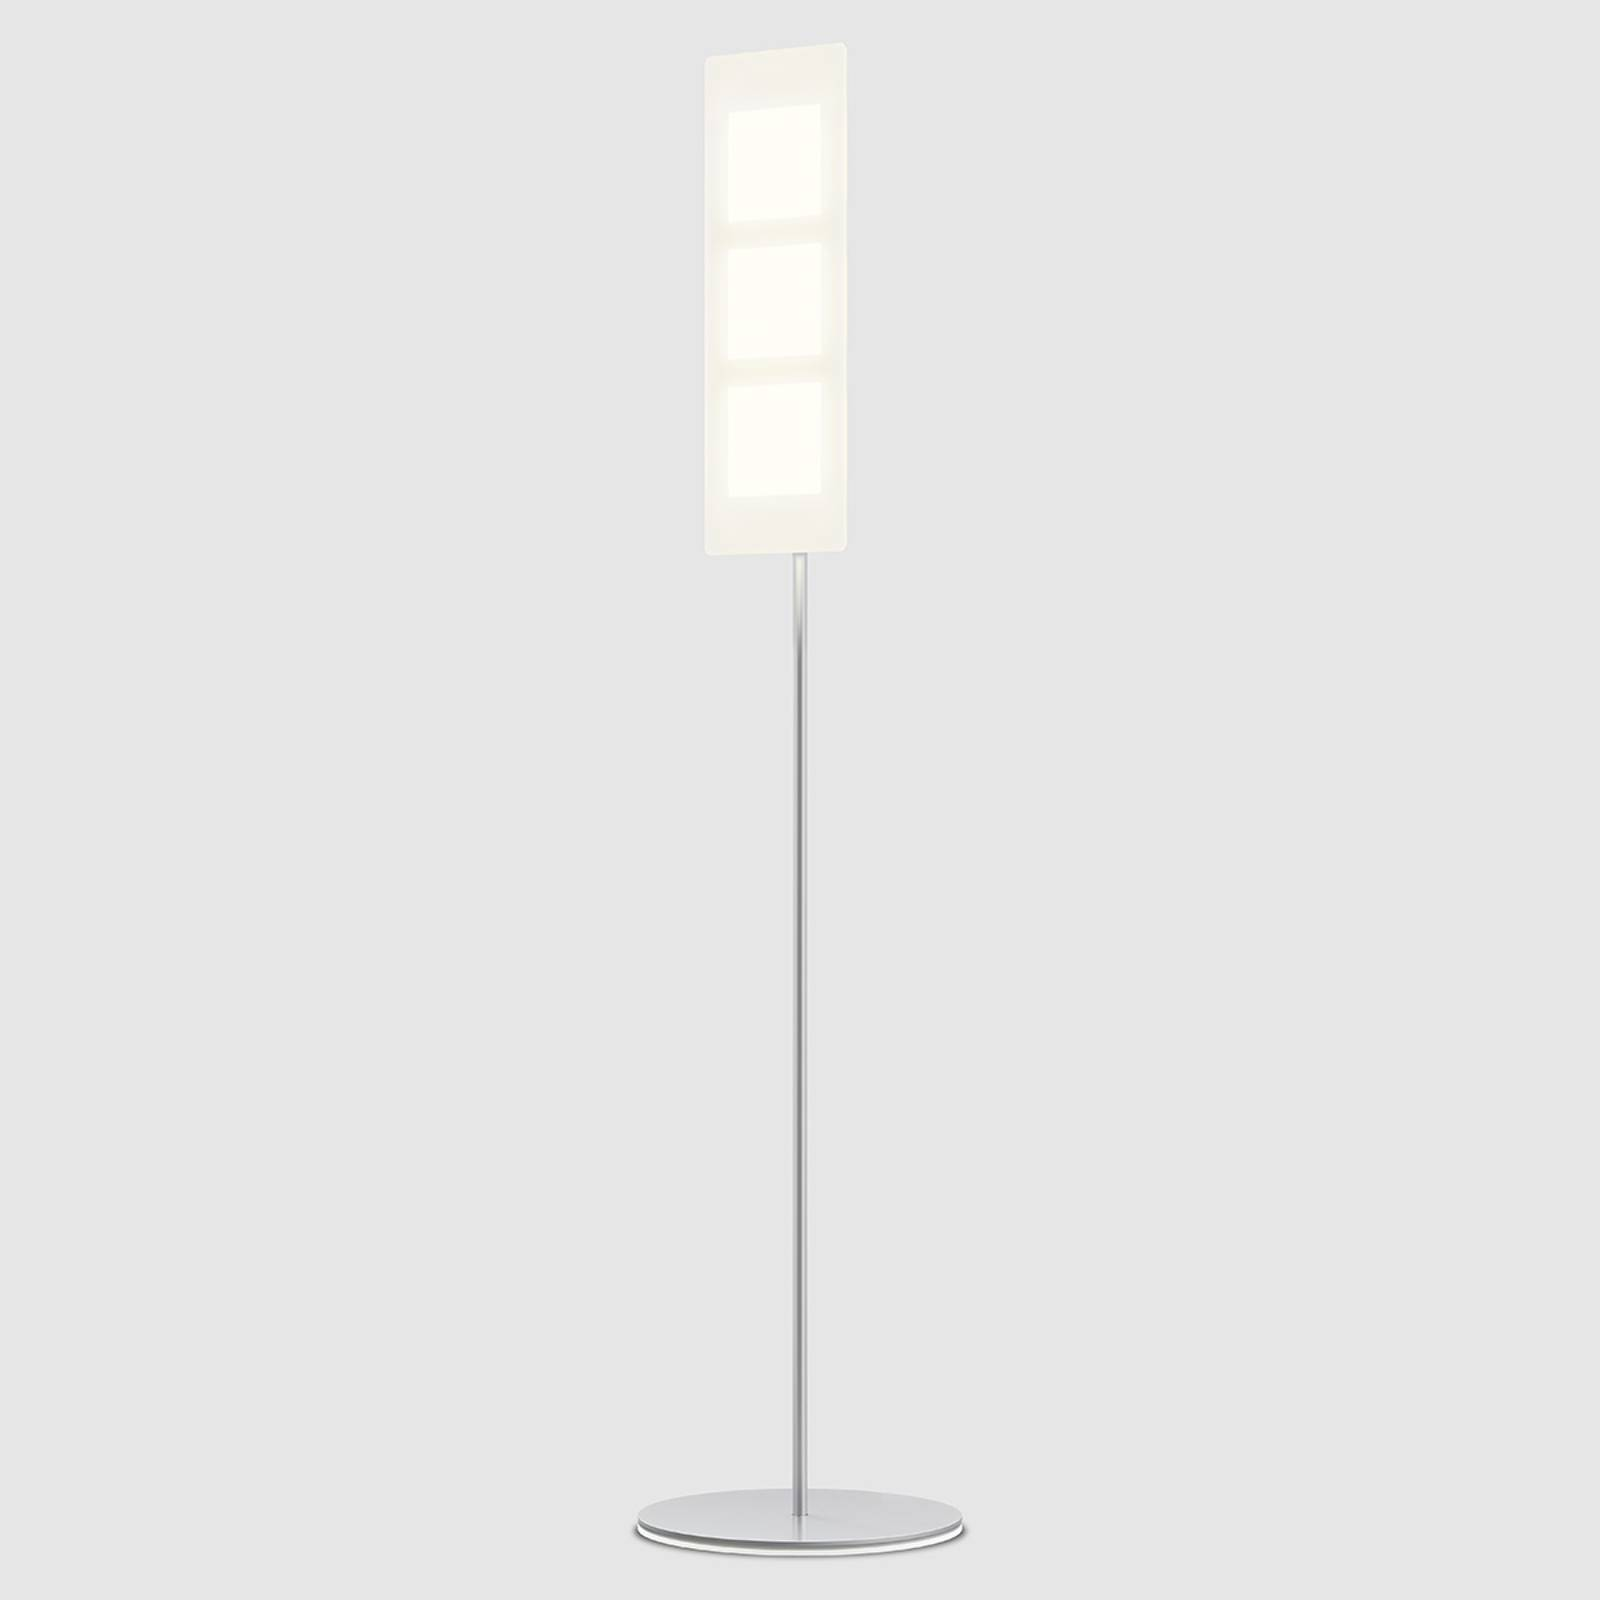 OMLED One f3 - OLED floor lamp in white from OMLED